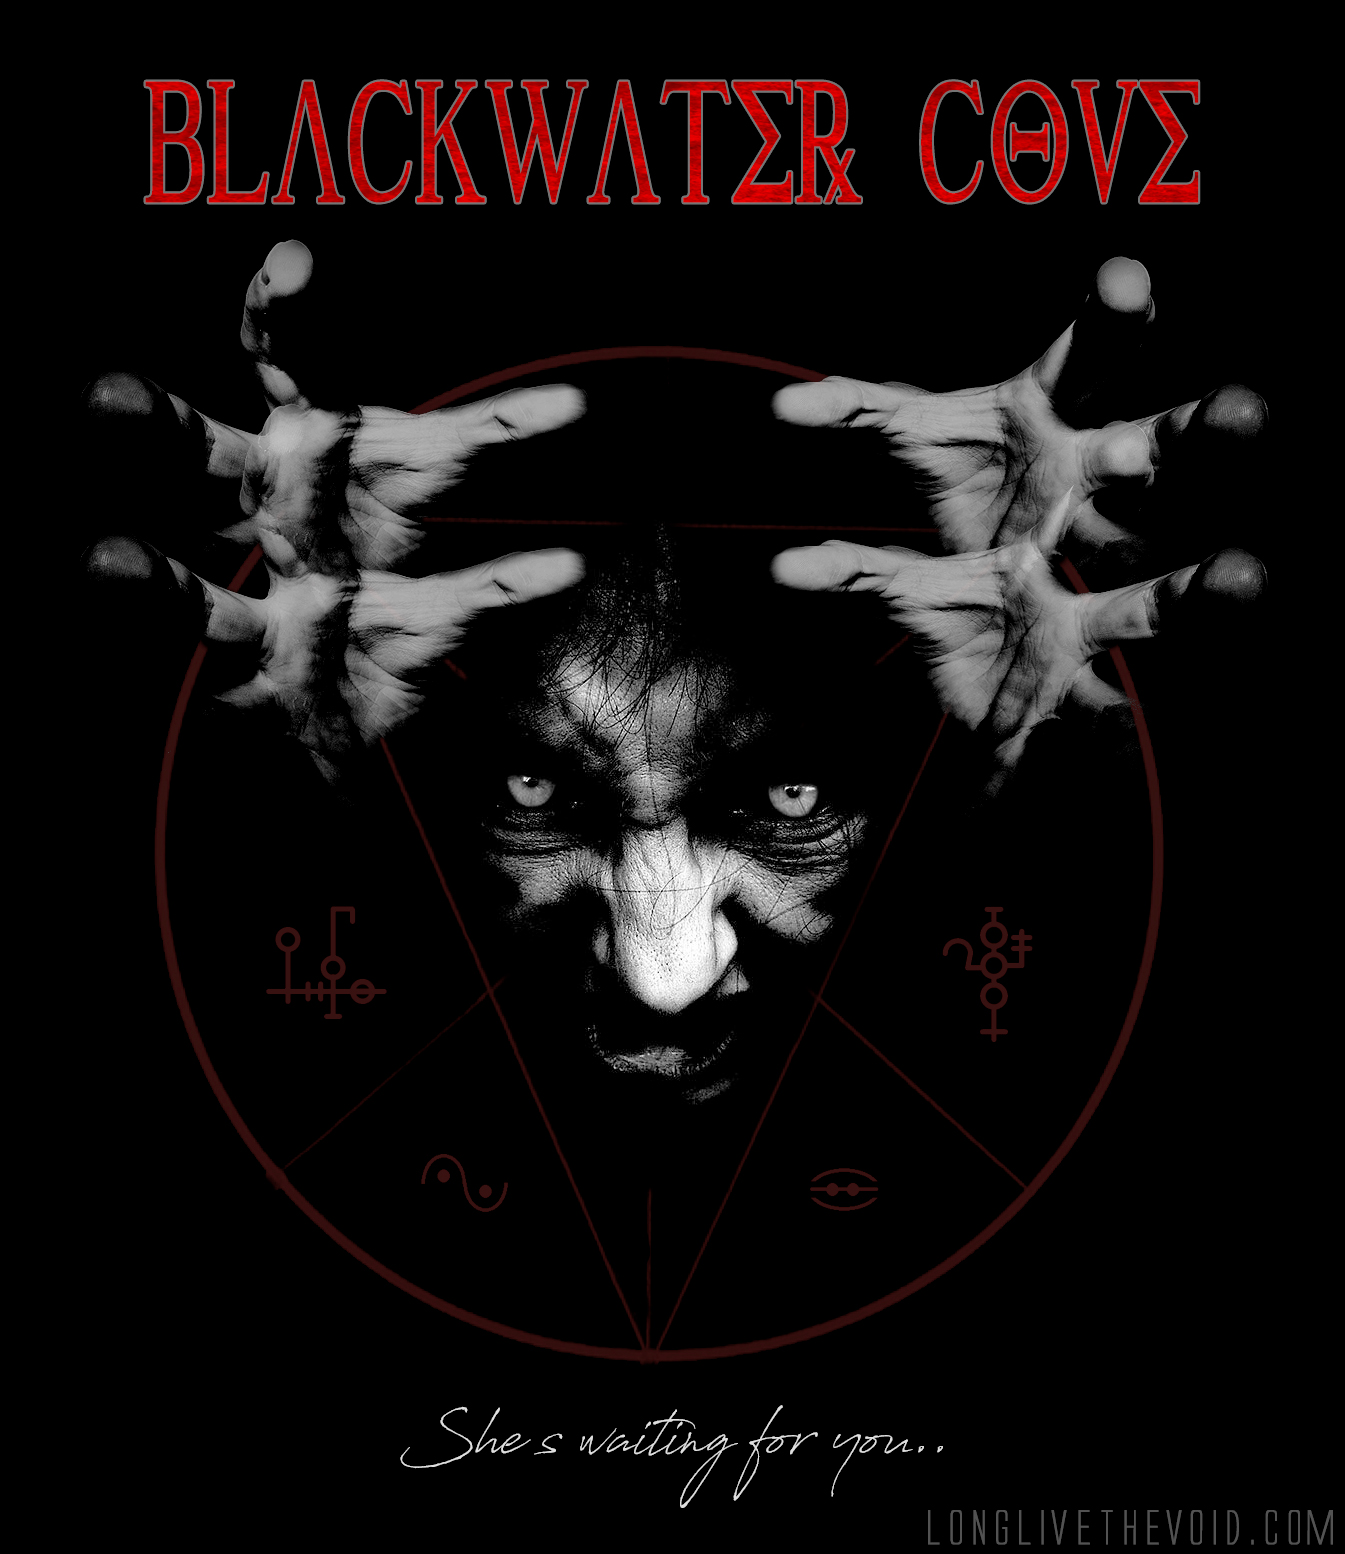 Blackwater-Cover-RED-BLANK.jpg